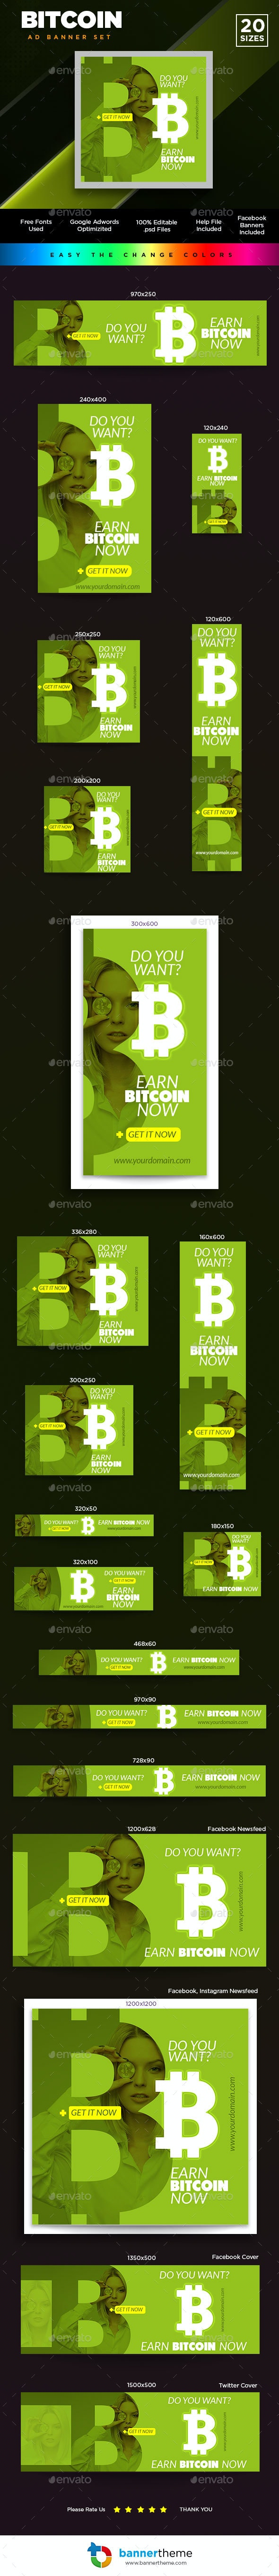 Bitcoin Banner - Banners & Ads Web Elements